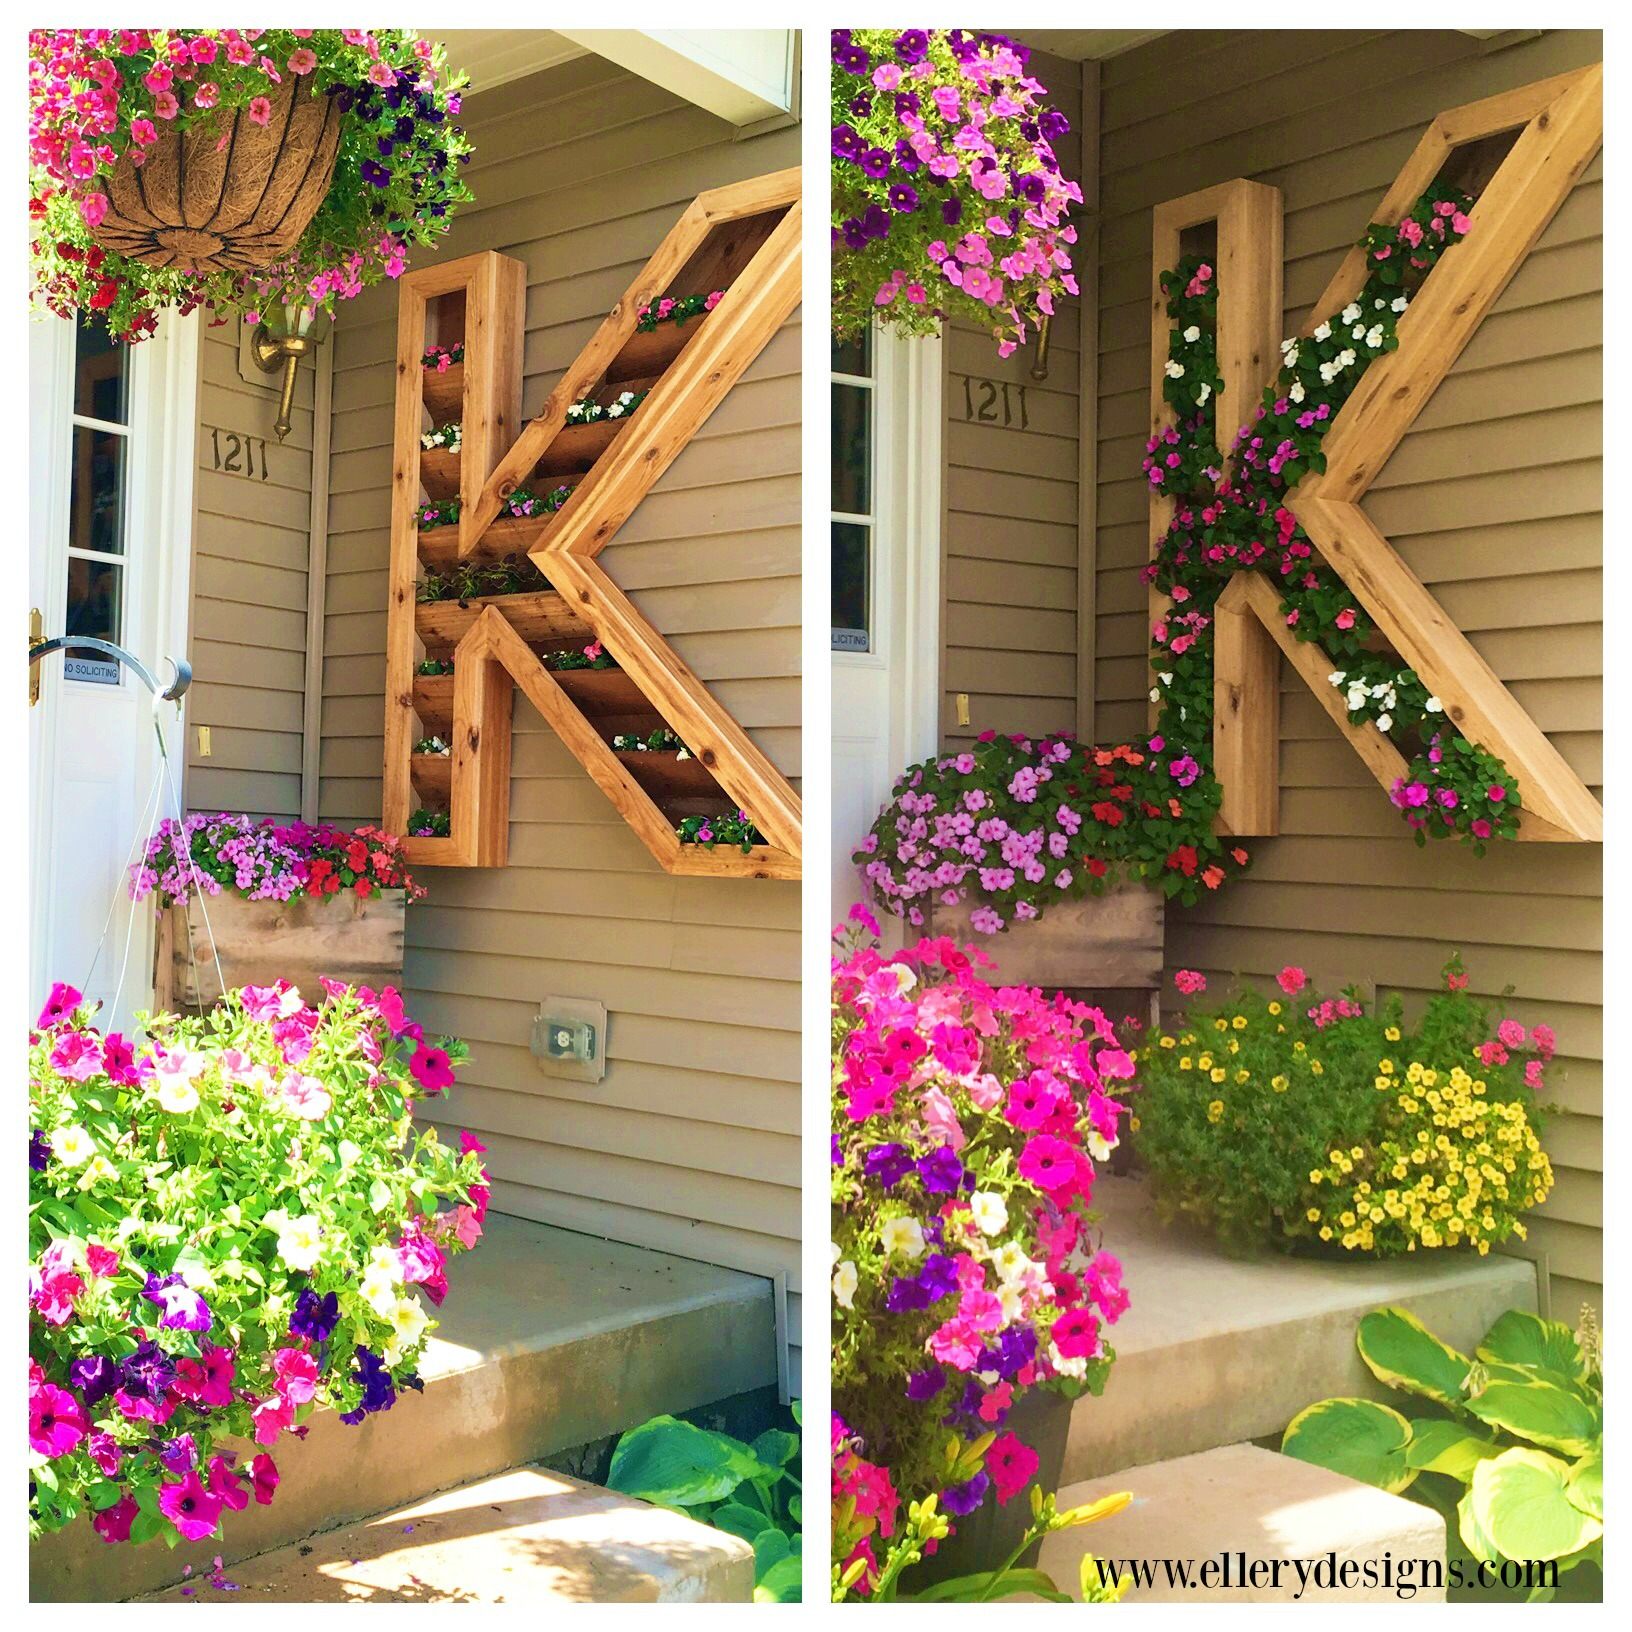 Diy Flower Gardening Ideas And Planter Projects: DIY Monogram Planter Tutorial